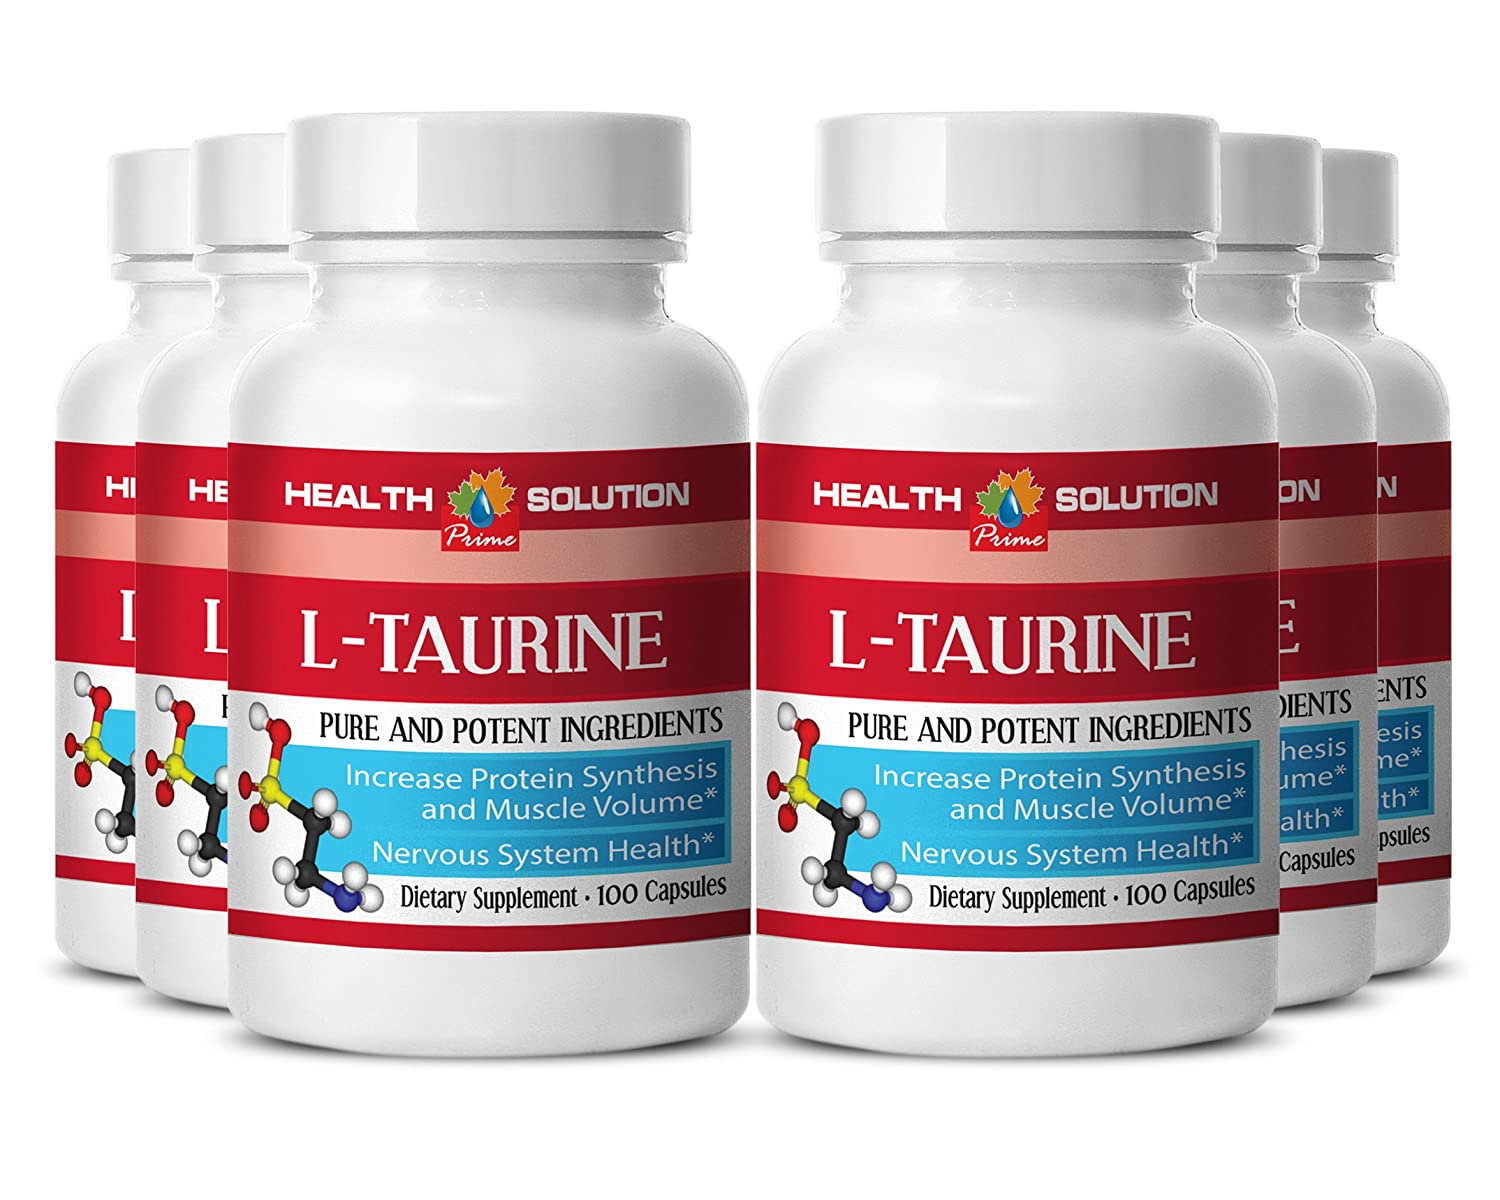 Amazon com: Taurine supplement liquid - L-TAURINE 500MG